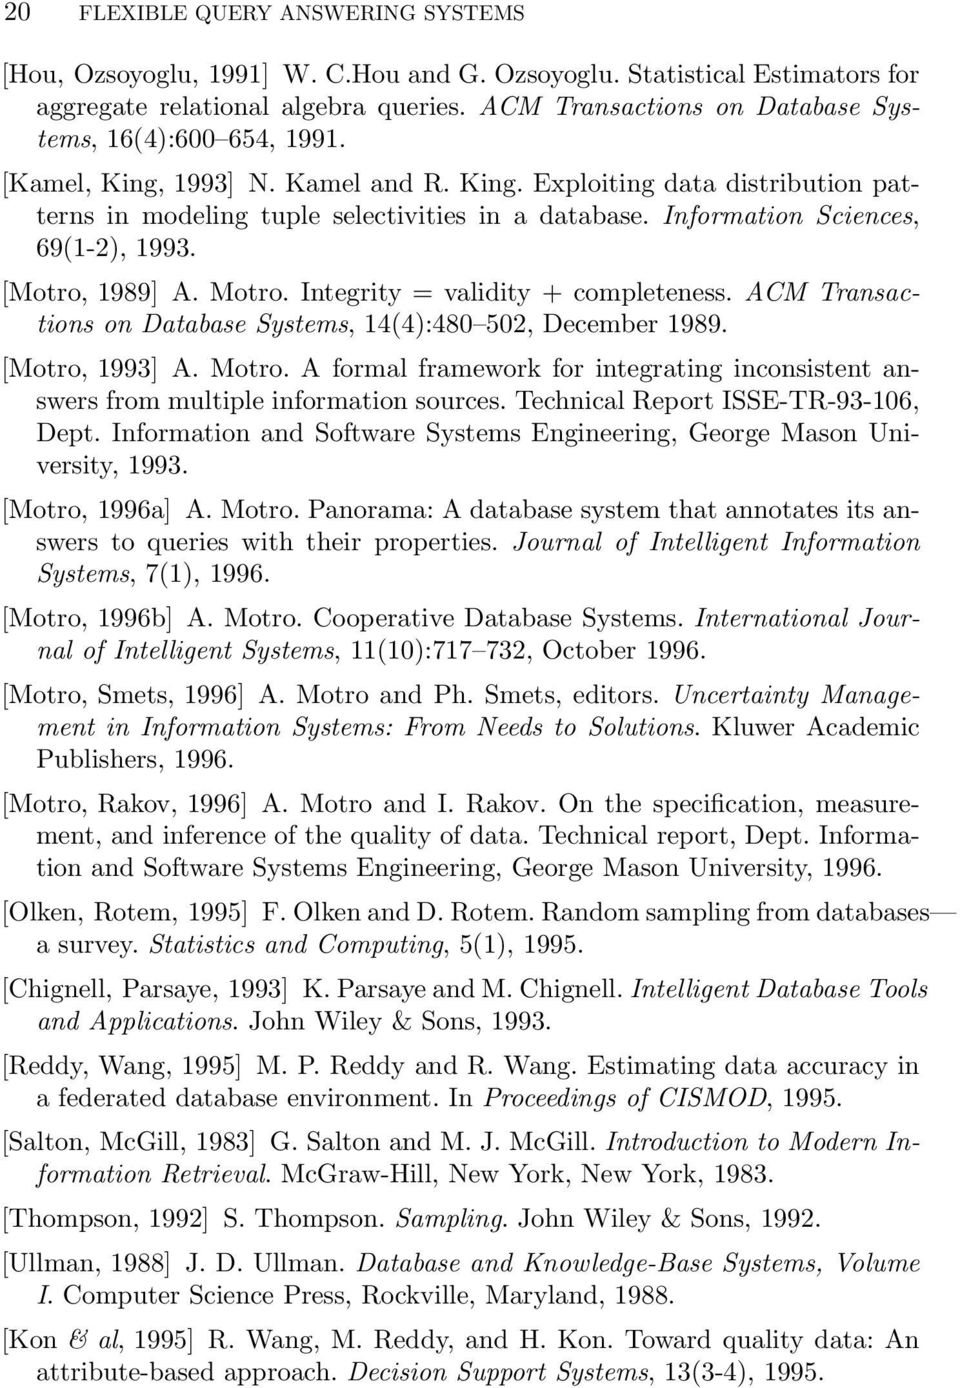 Information Sciences, 69(1-2), 1993. [Motro, 1989] A. Motro. Integrity = validity + completeness. ACM Transactions on Database Systems, 14(4):480 502, December 1989. [Motro, 1993] A. Motro. A formal framework for integrating inconsistent answers from multiple information sources.